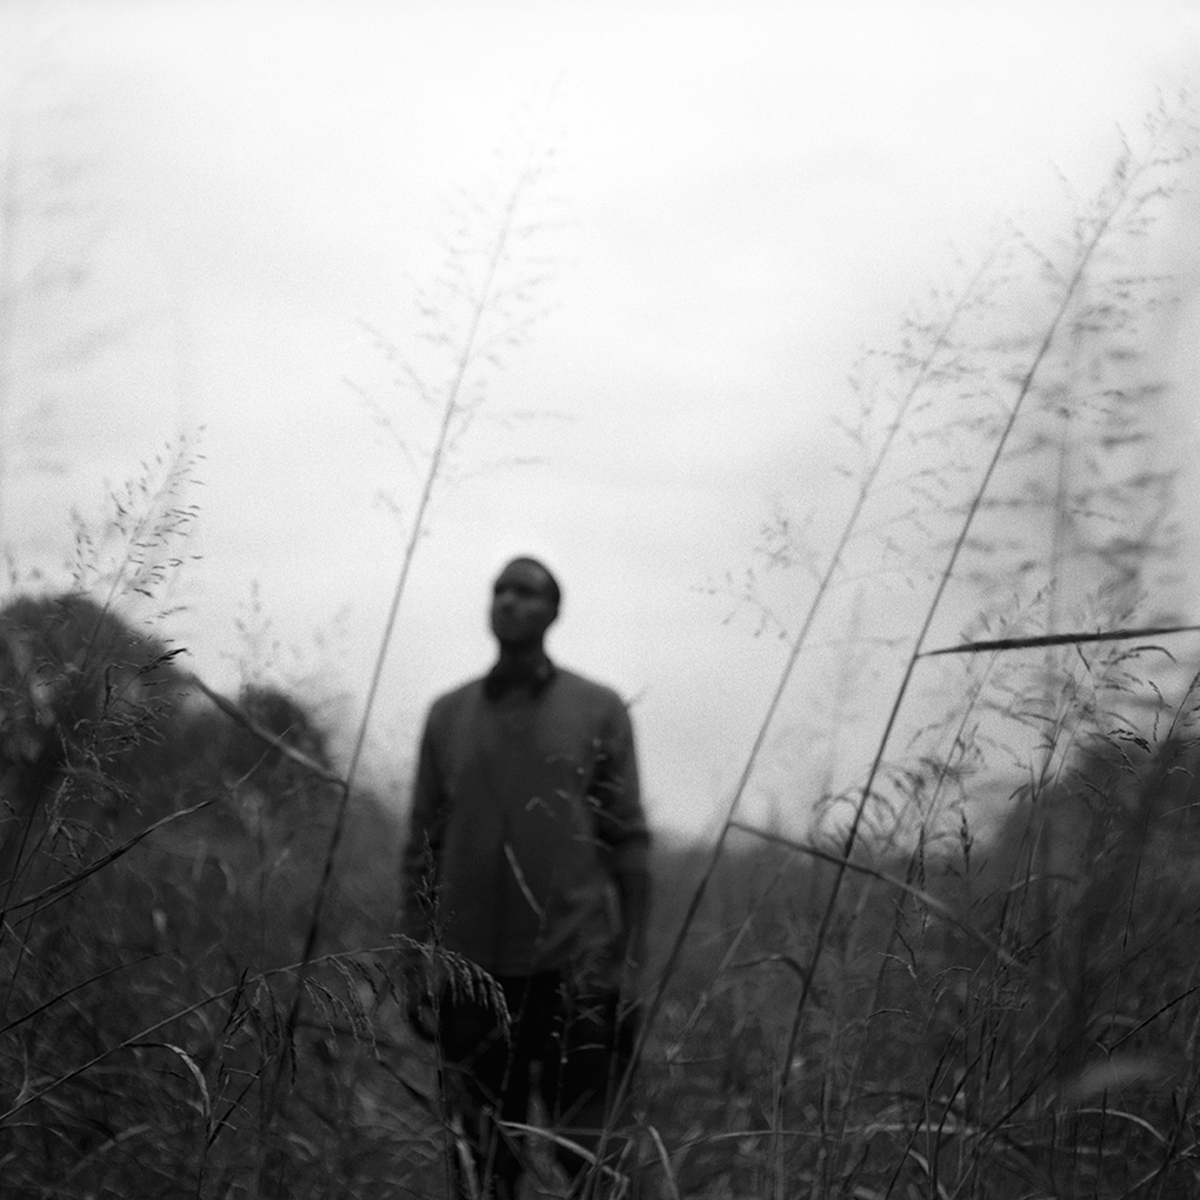 Man in Field, Mound Bayou, MS 2011